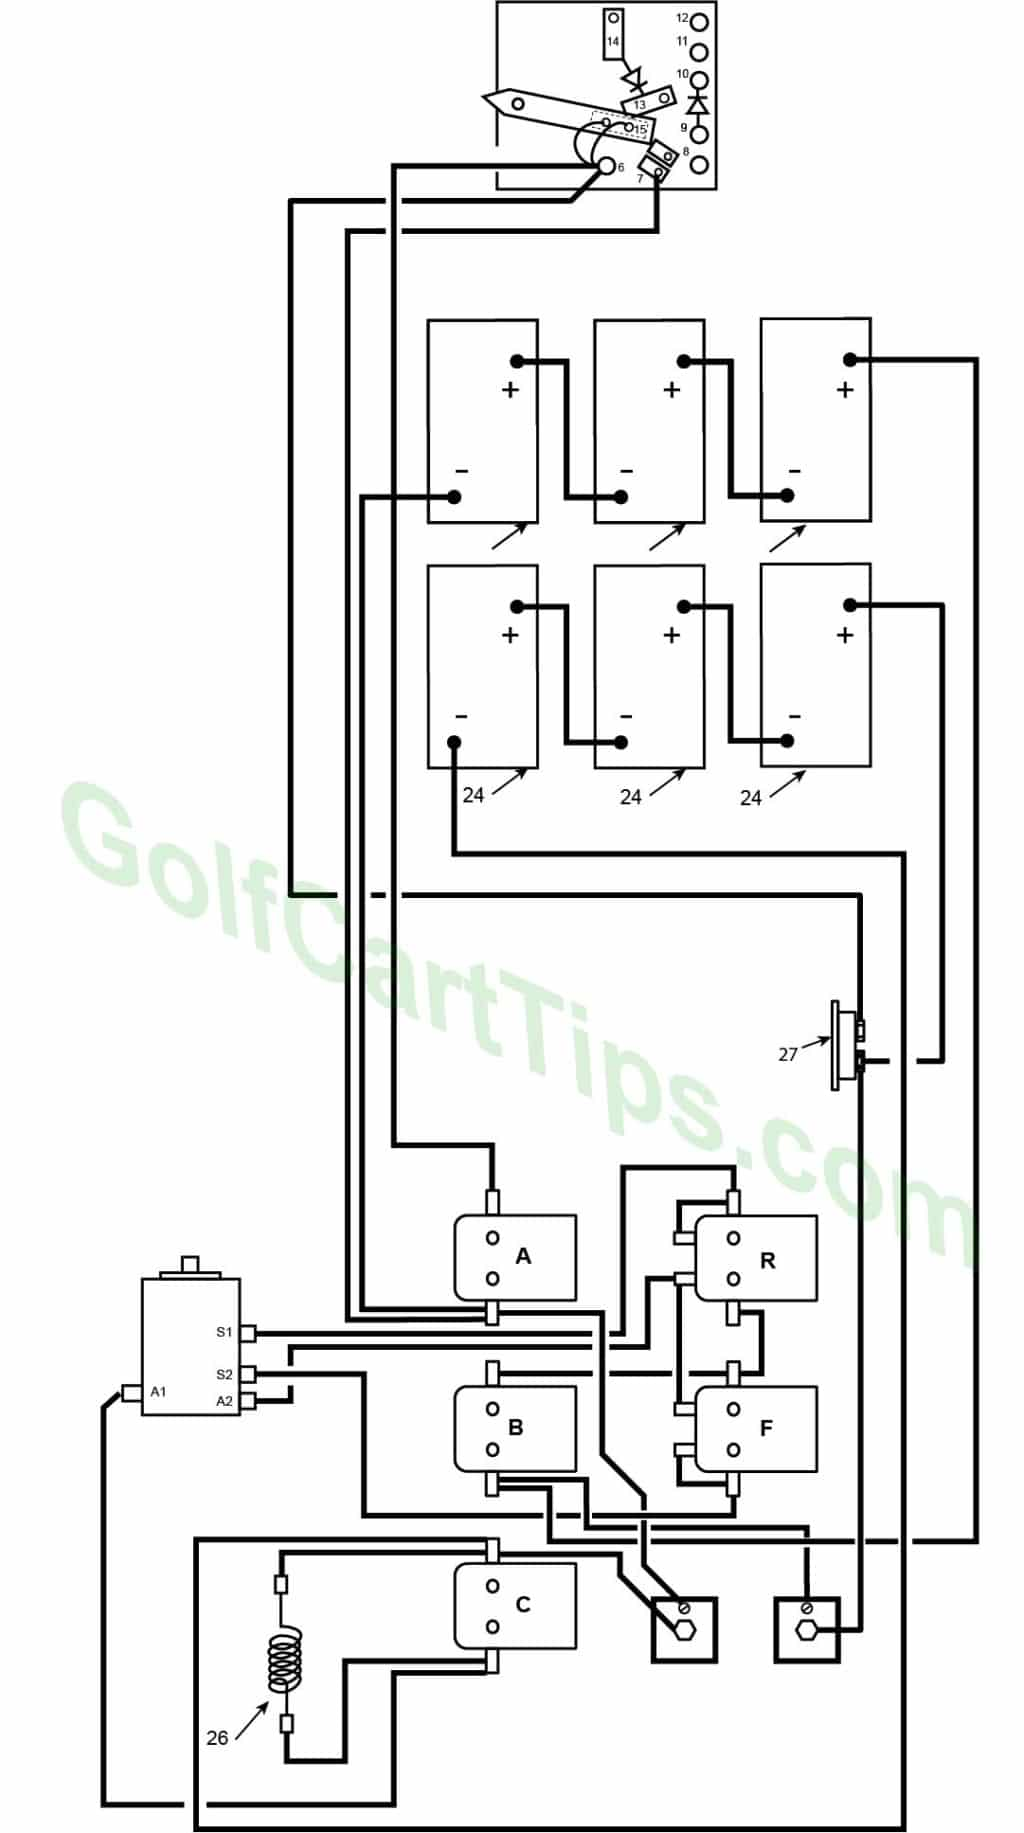 Yamaha Golf Cart Wiring Diagram Ly Fresh Harley Davidson